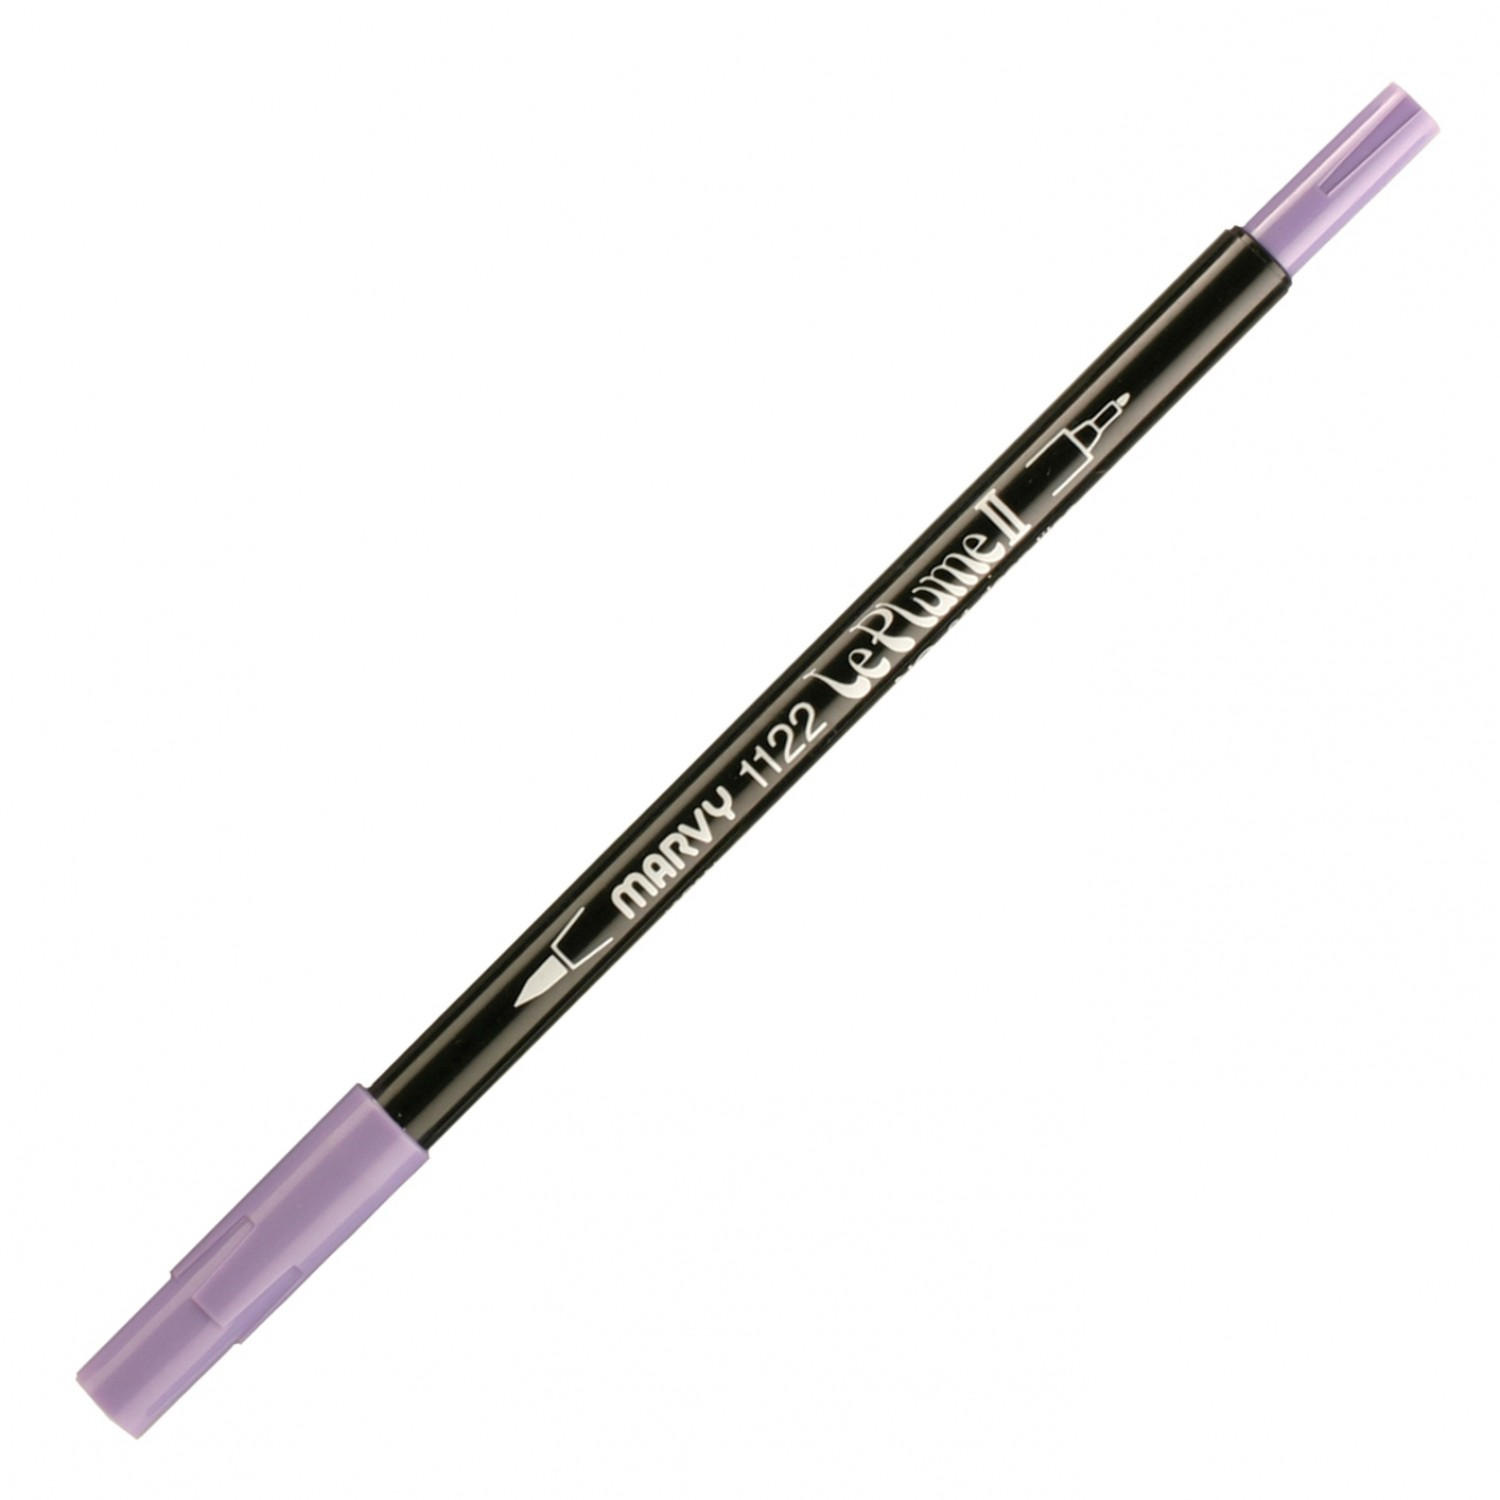 Marvy Le Plume II Double Ended Watercolor Marker, Deep Lilac